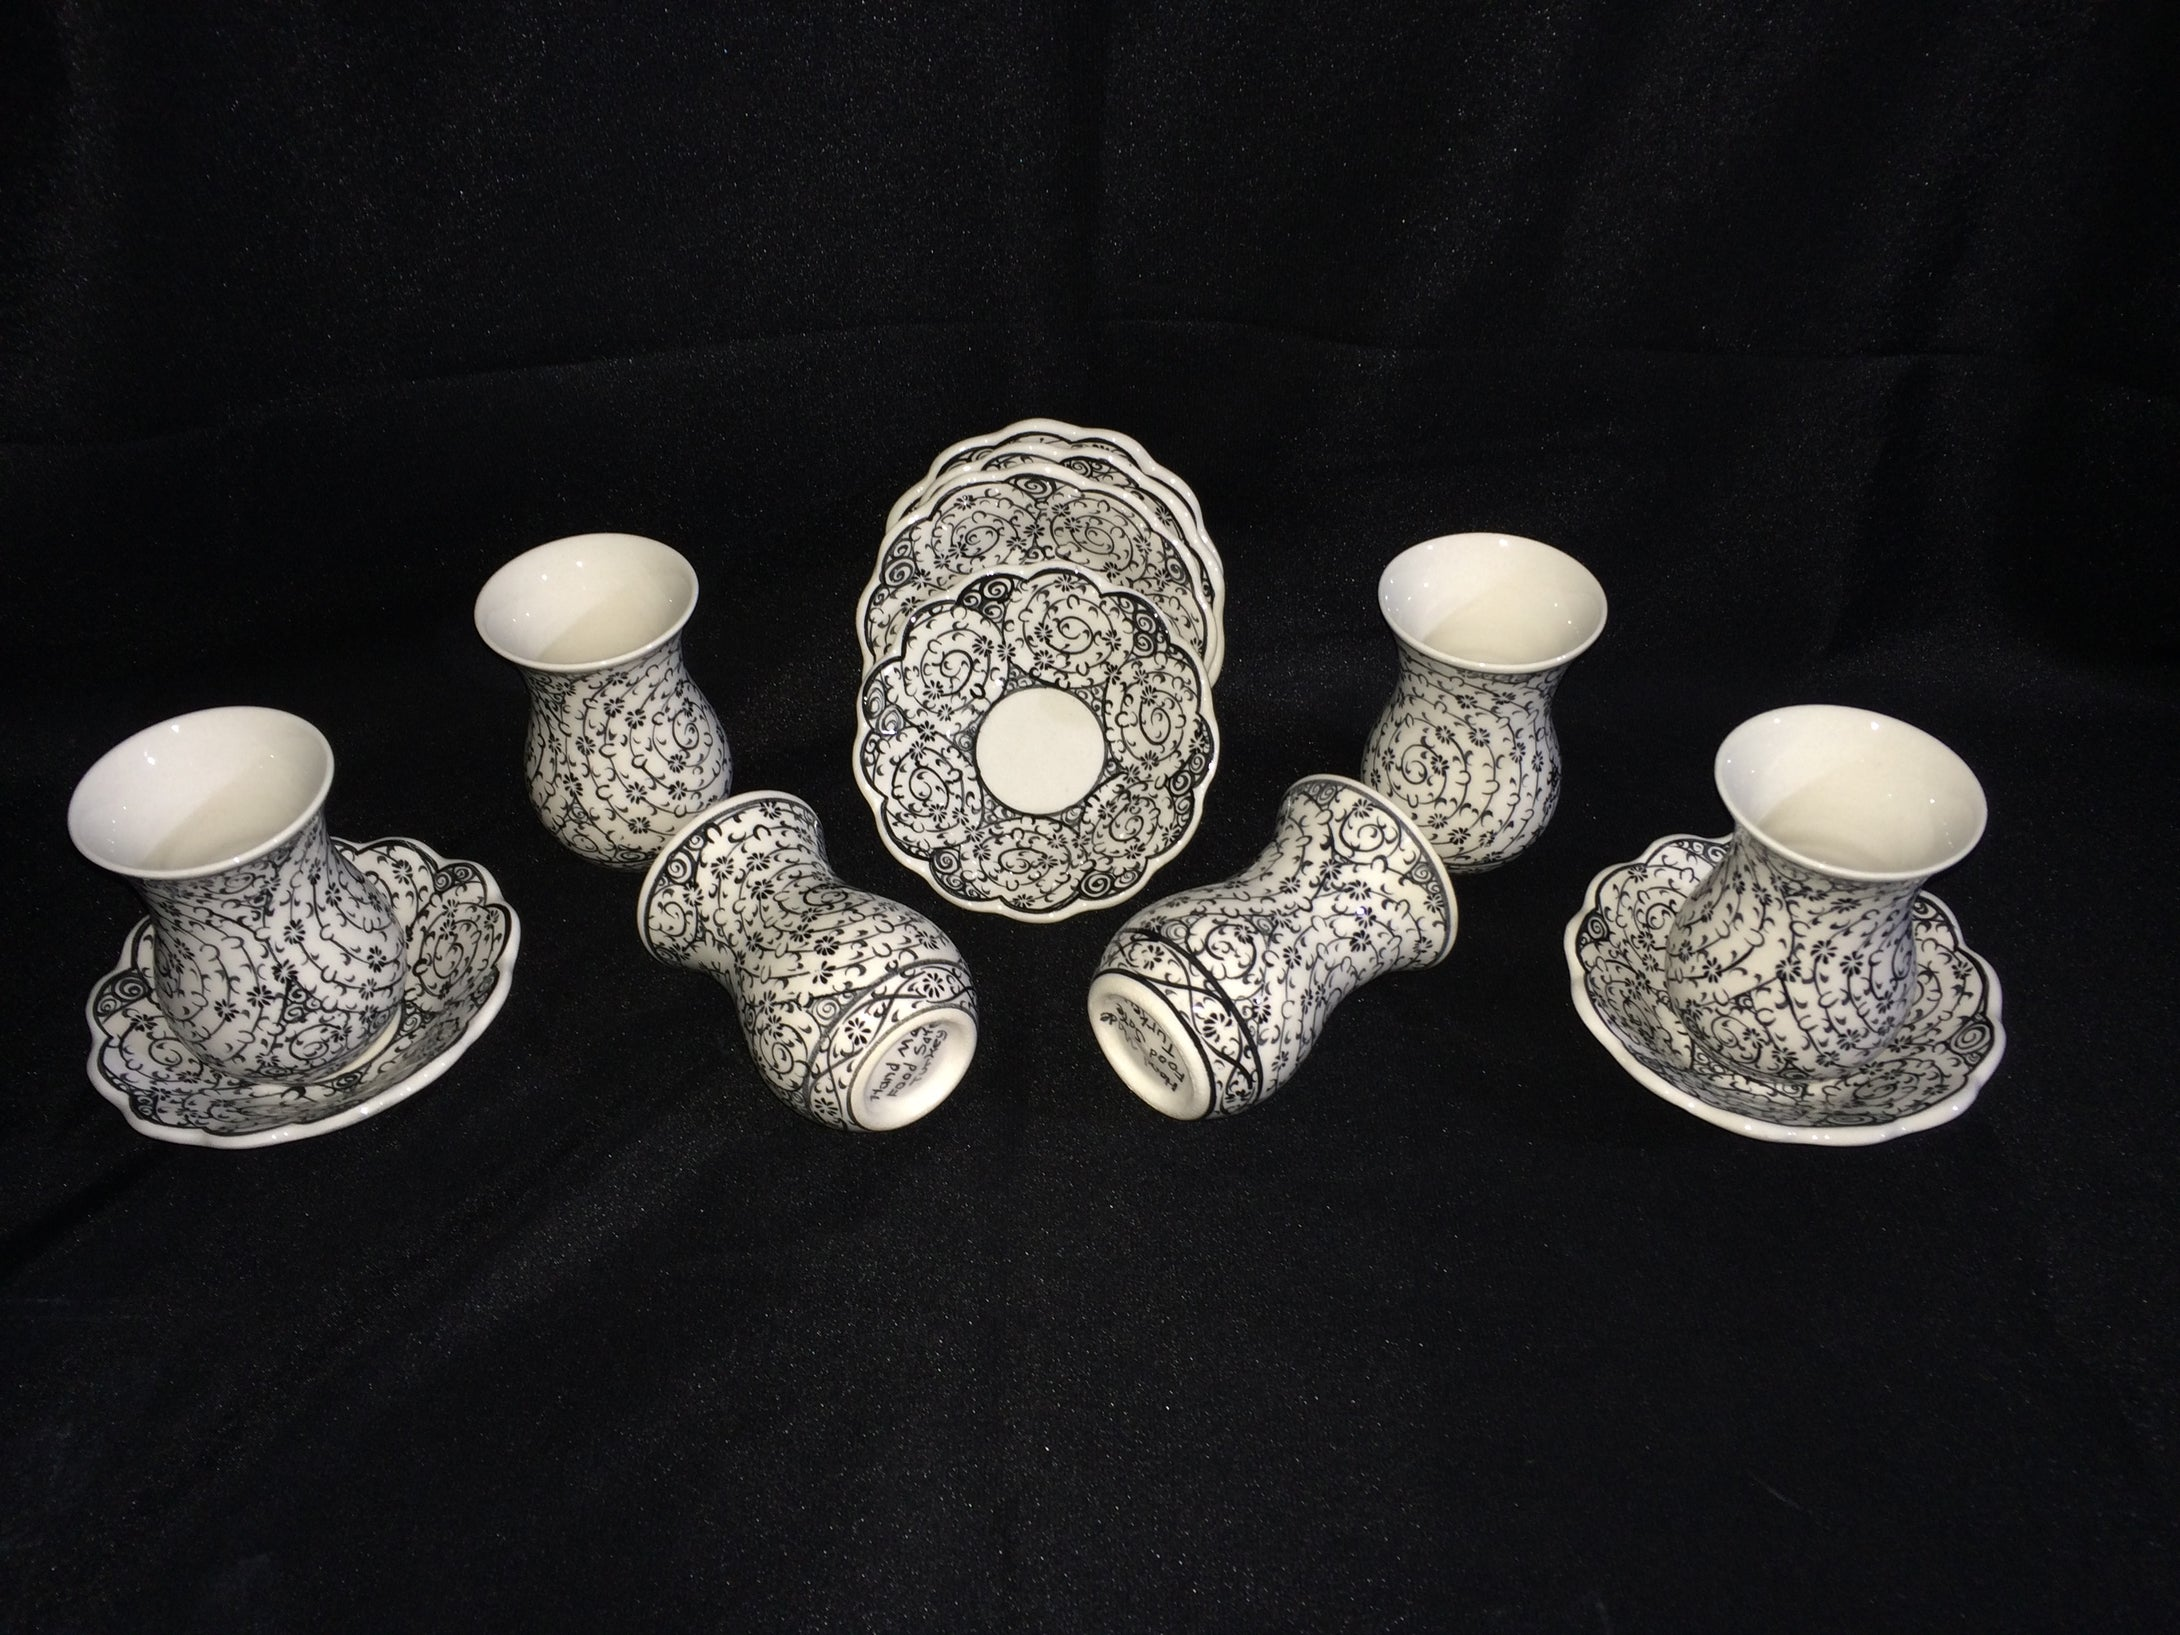 Ceramic Turkish Tea Set 007